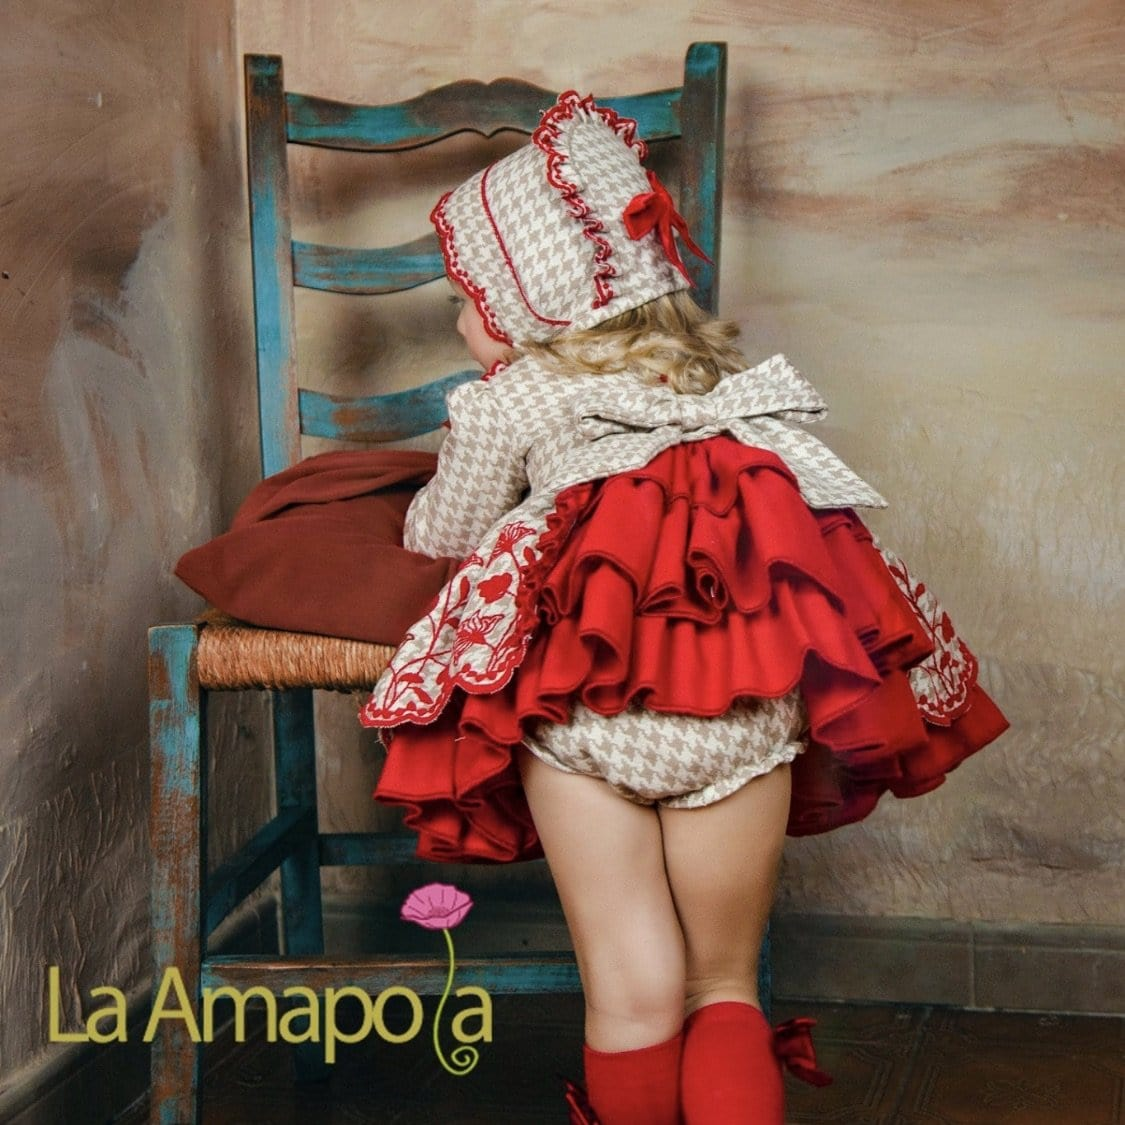 LA AMAPOLA DIVINE RED BABY DRESS & BONNET